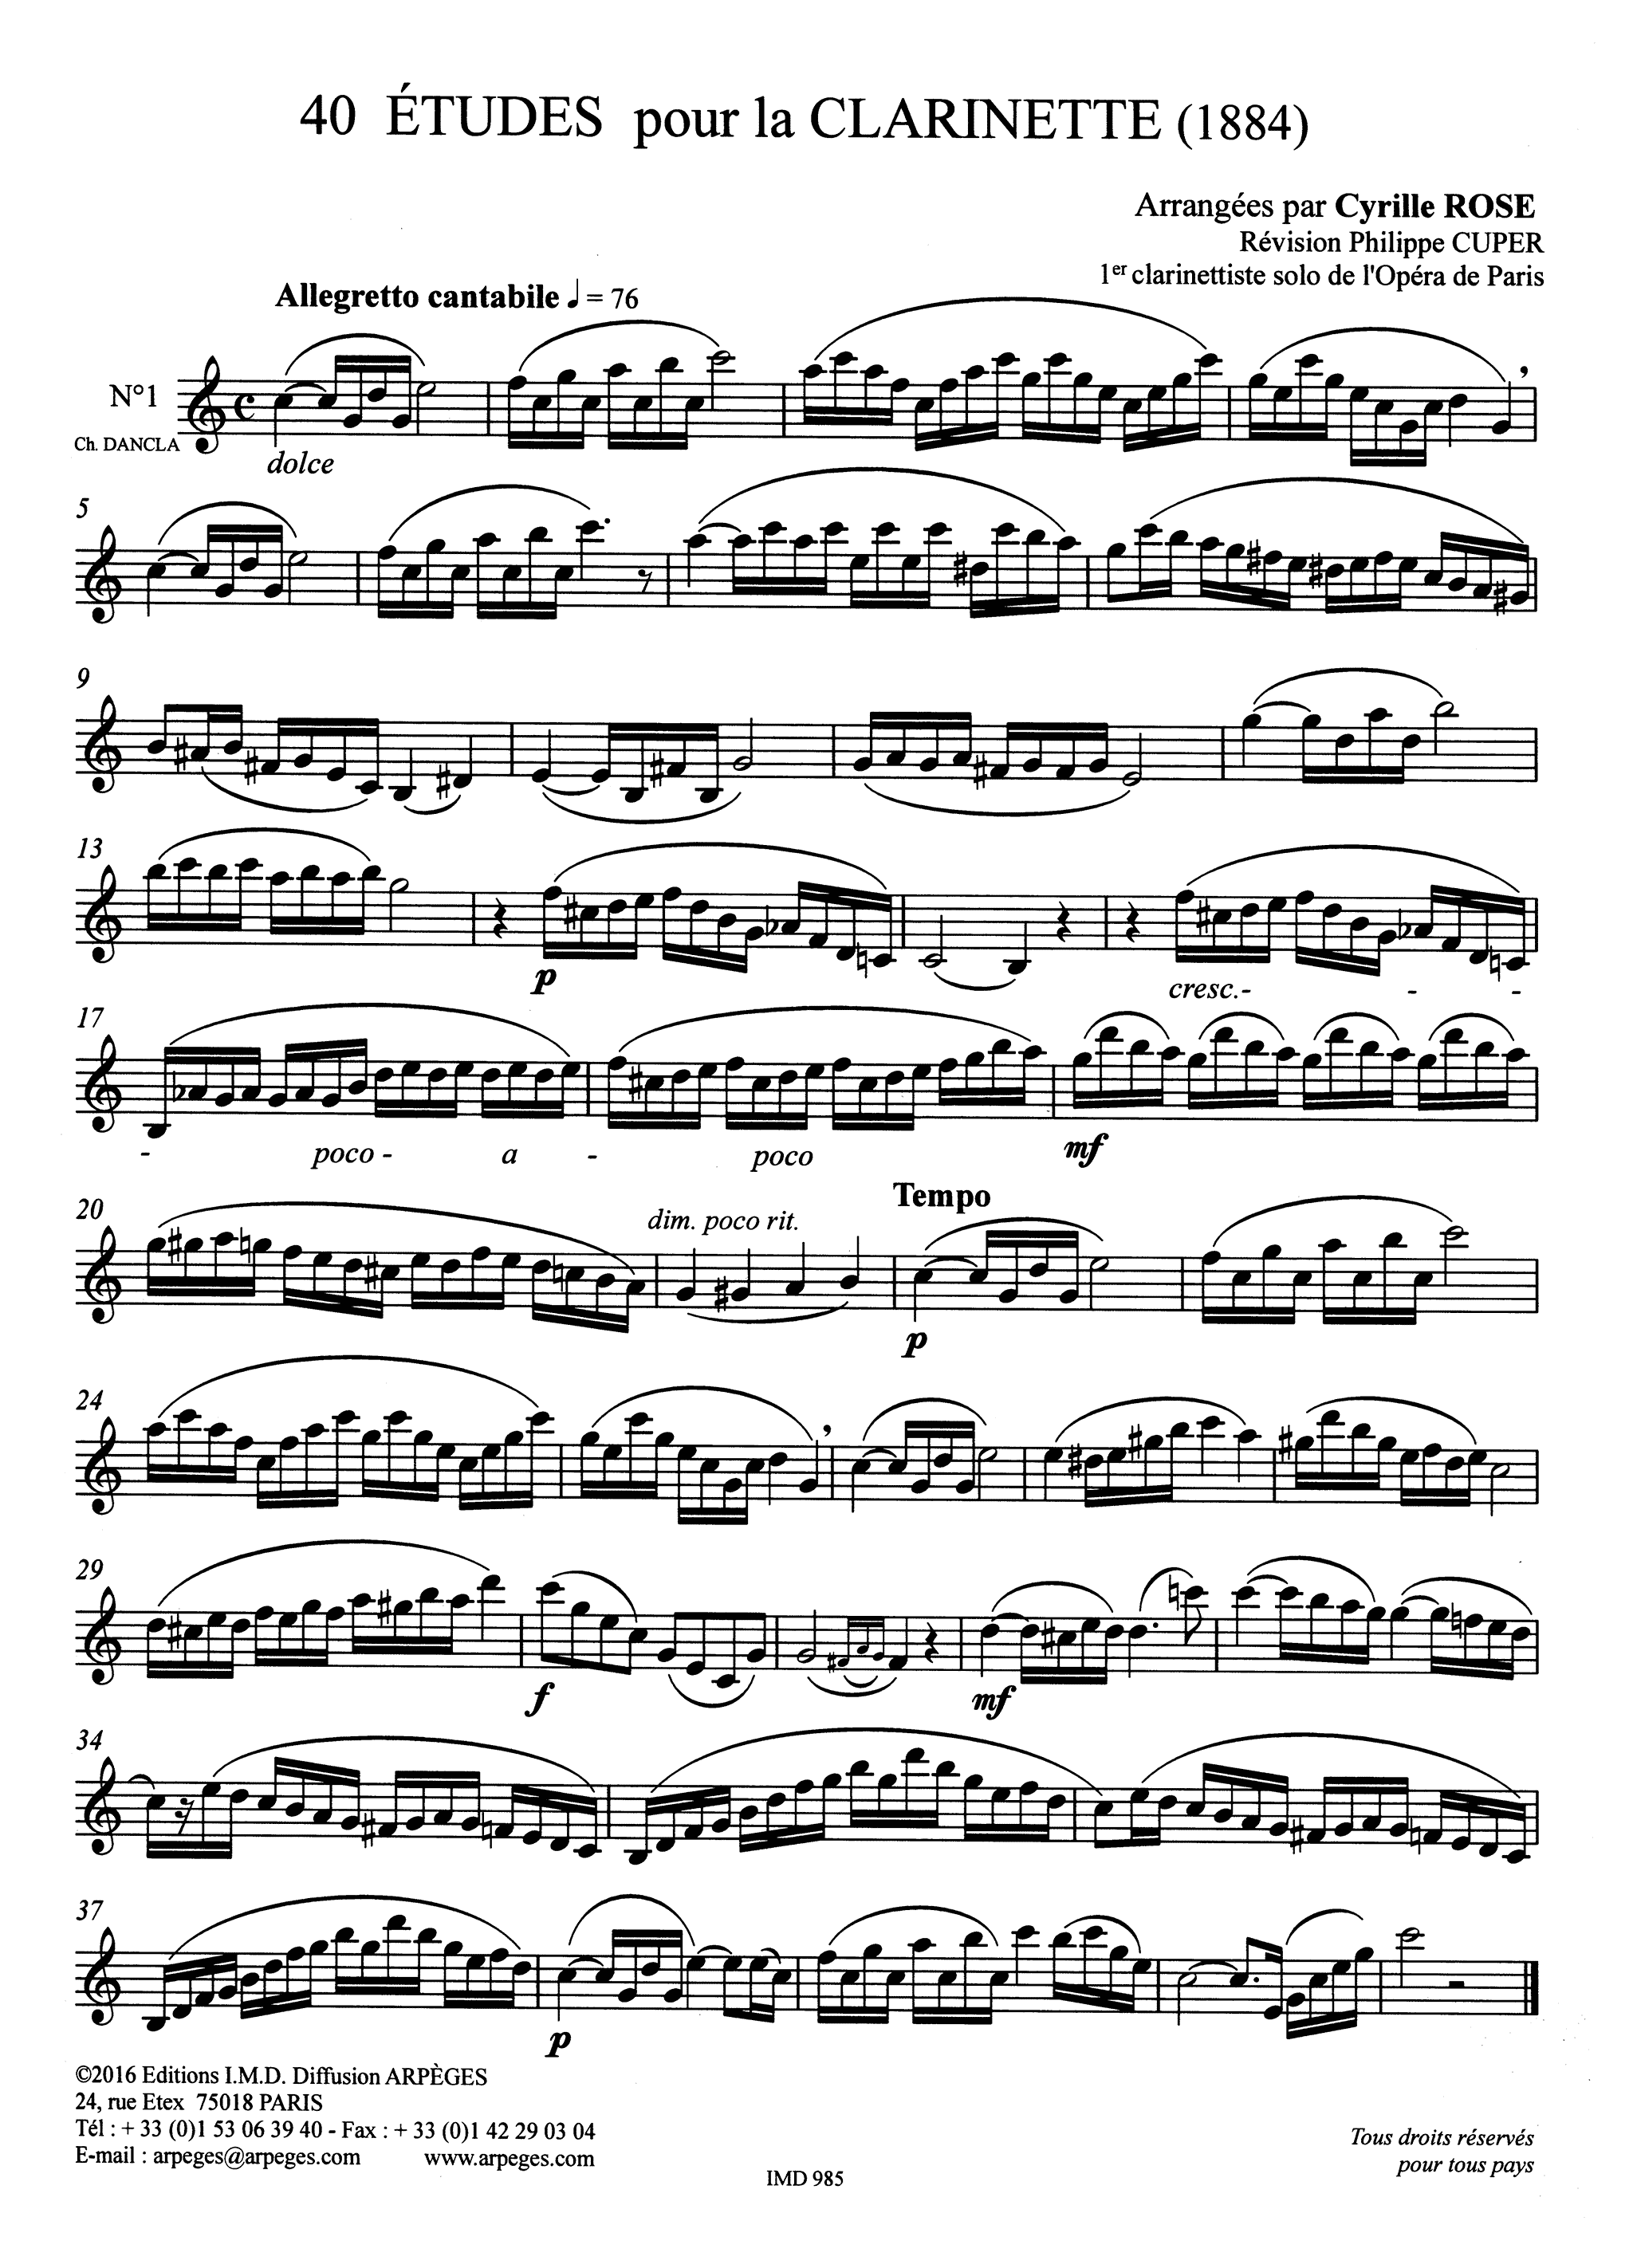 40 Études for Clarinet Page 2